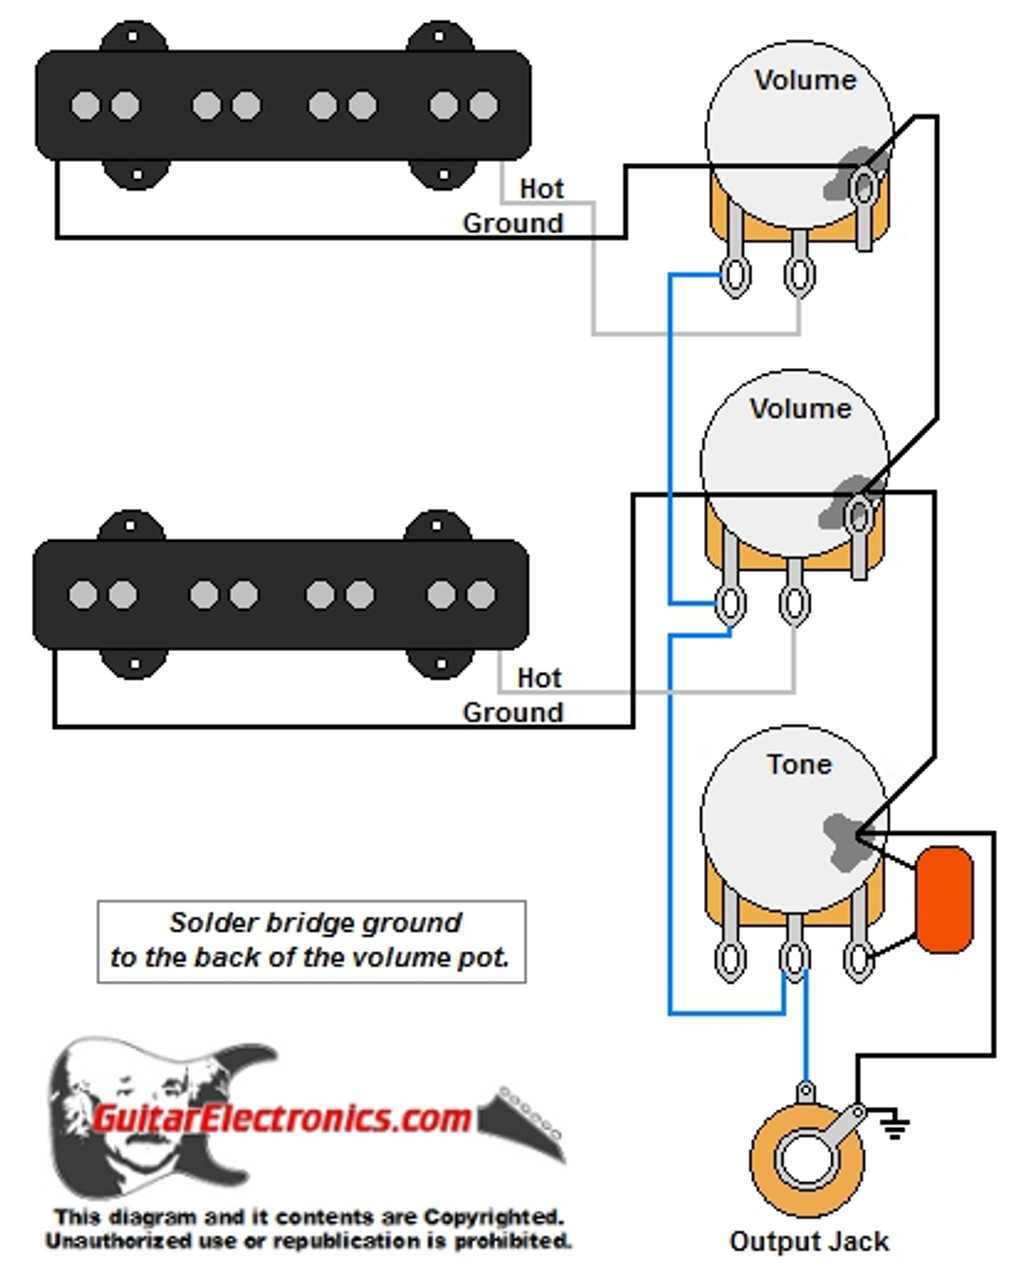 [DIAGRAM_5FD]  Jazz Bass Style Wiring Diagram | Fender Bass Wiring Diagram |  | Guitar Electronics